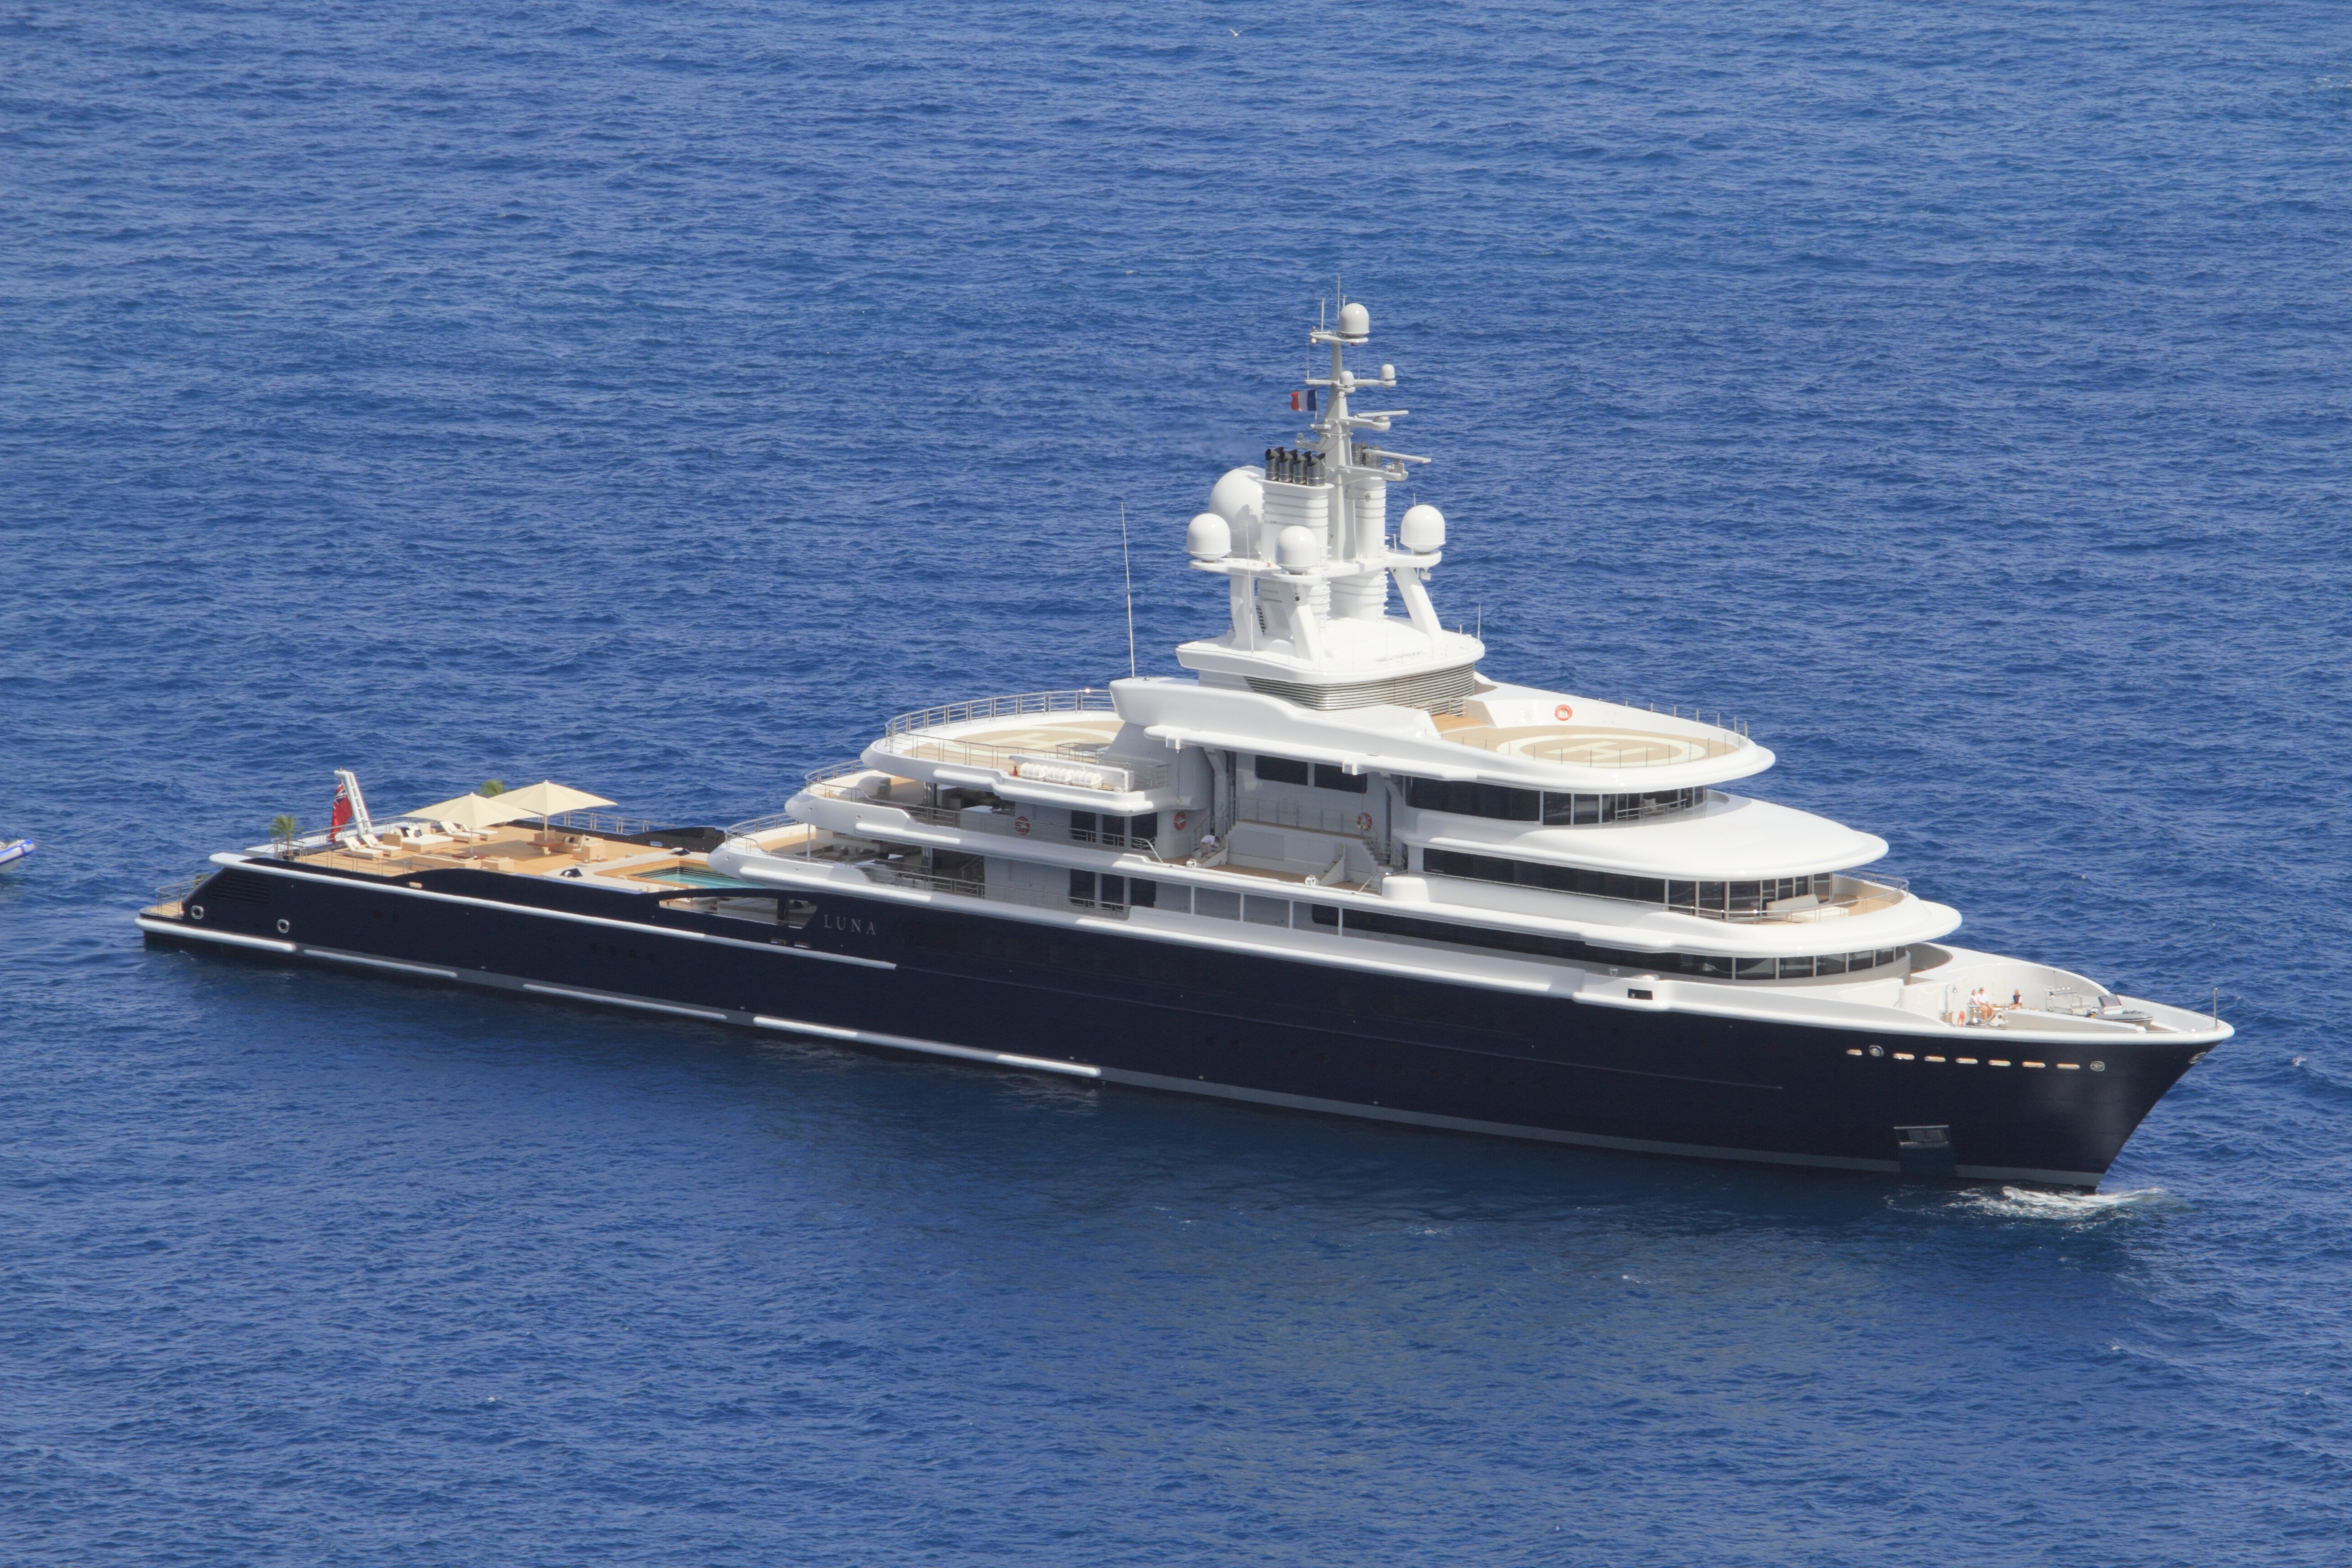 Image for article Sharia court vetoes freezing order on 115m M/Y 'Luna'